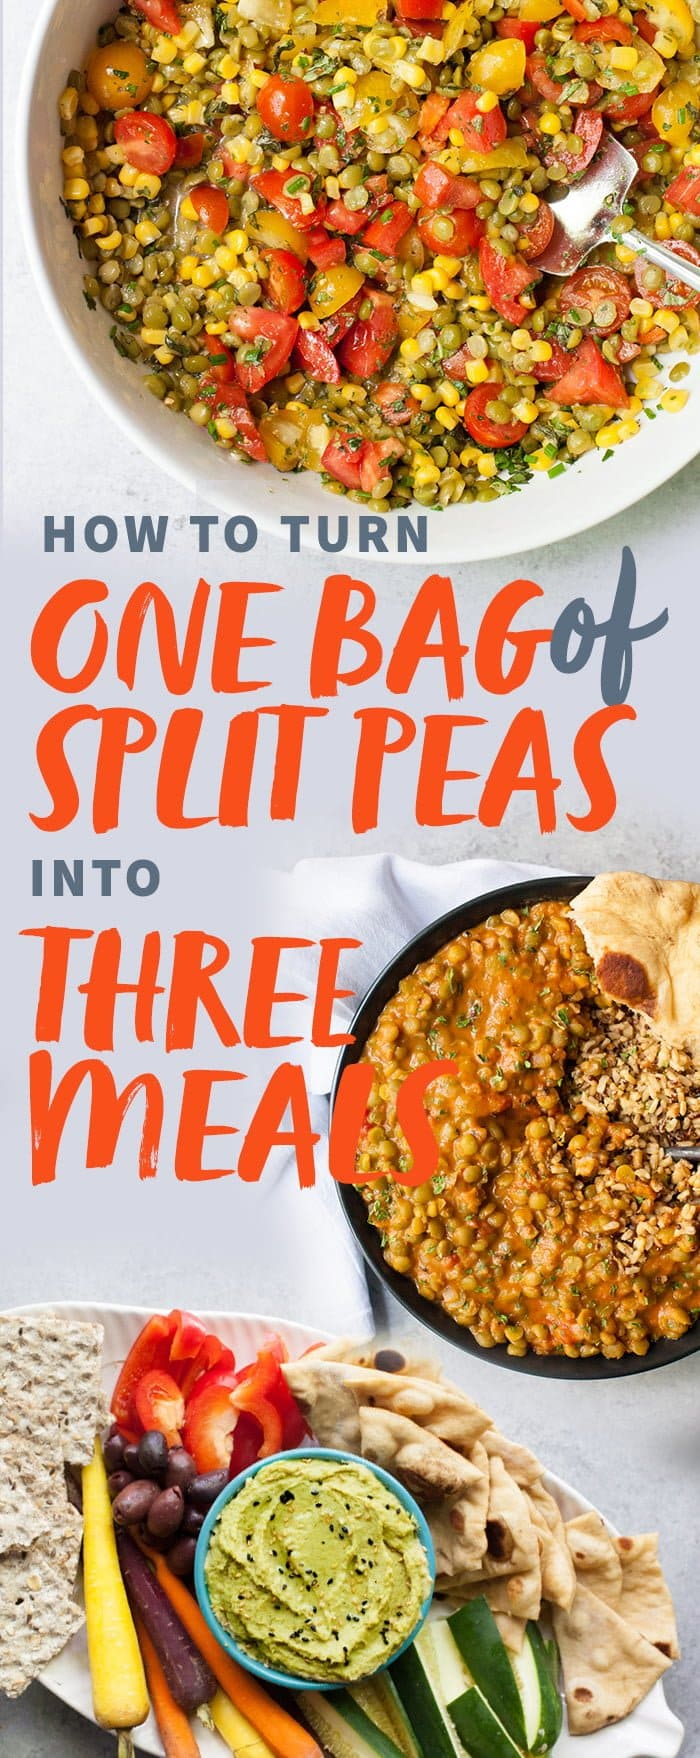 One Bag of Split Peas, Three Meals